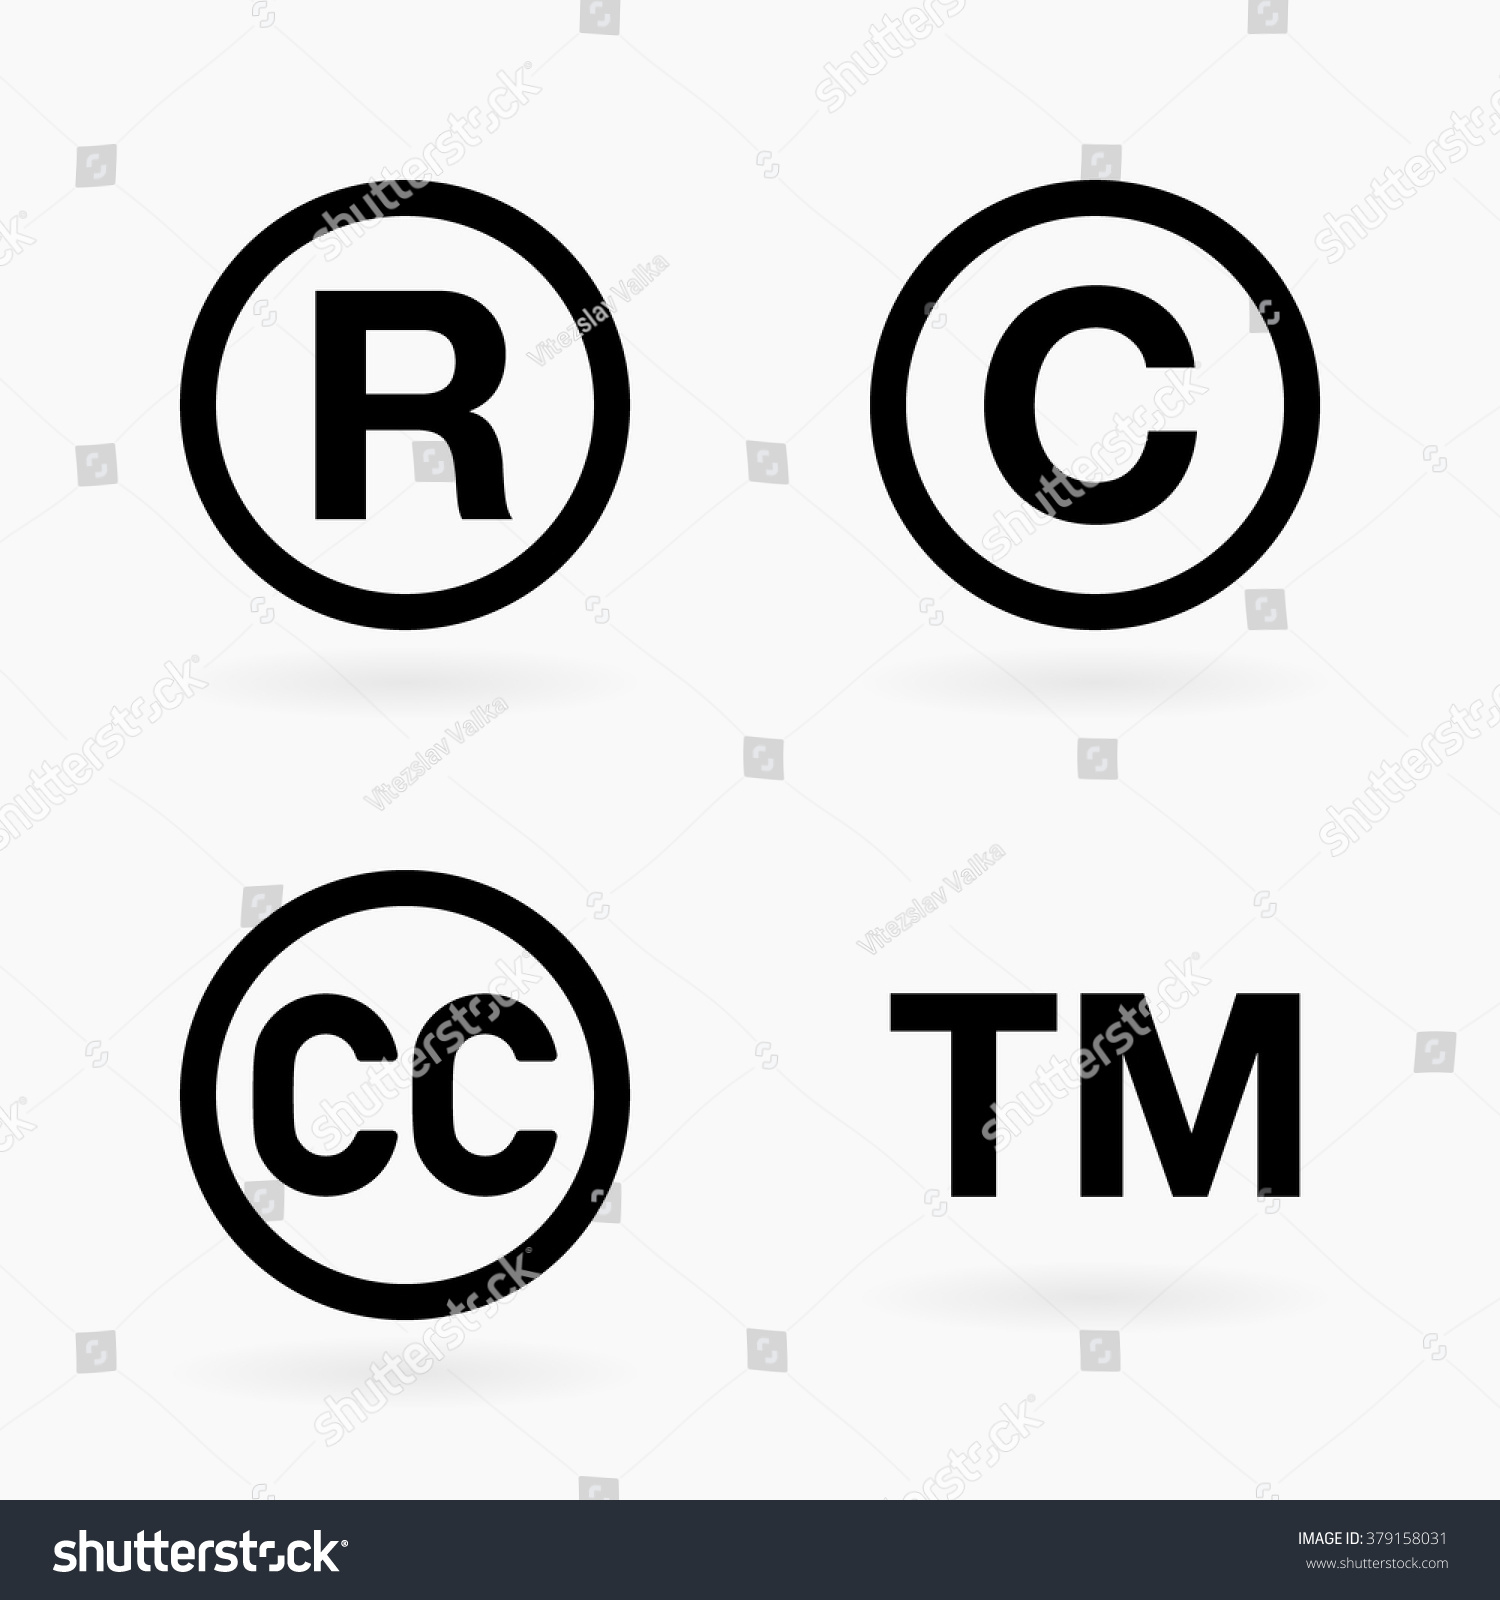 Intellectual Property Icon: Set Of Four Intellectual Property And Public Domain Black